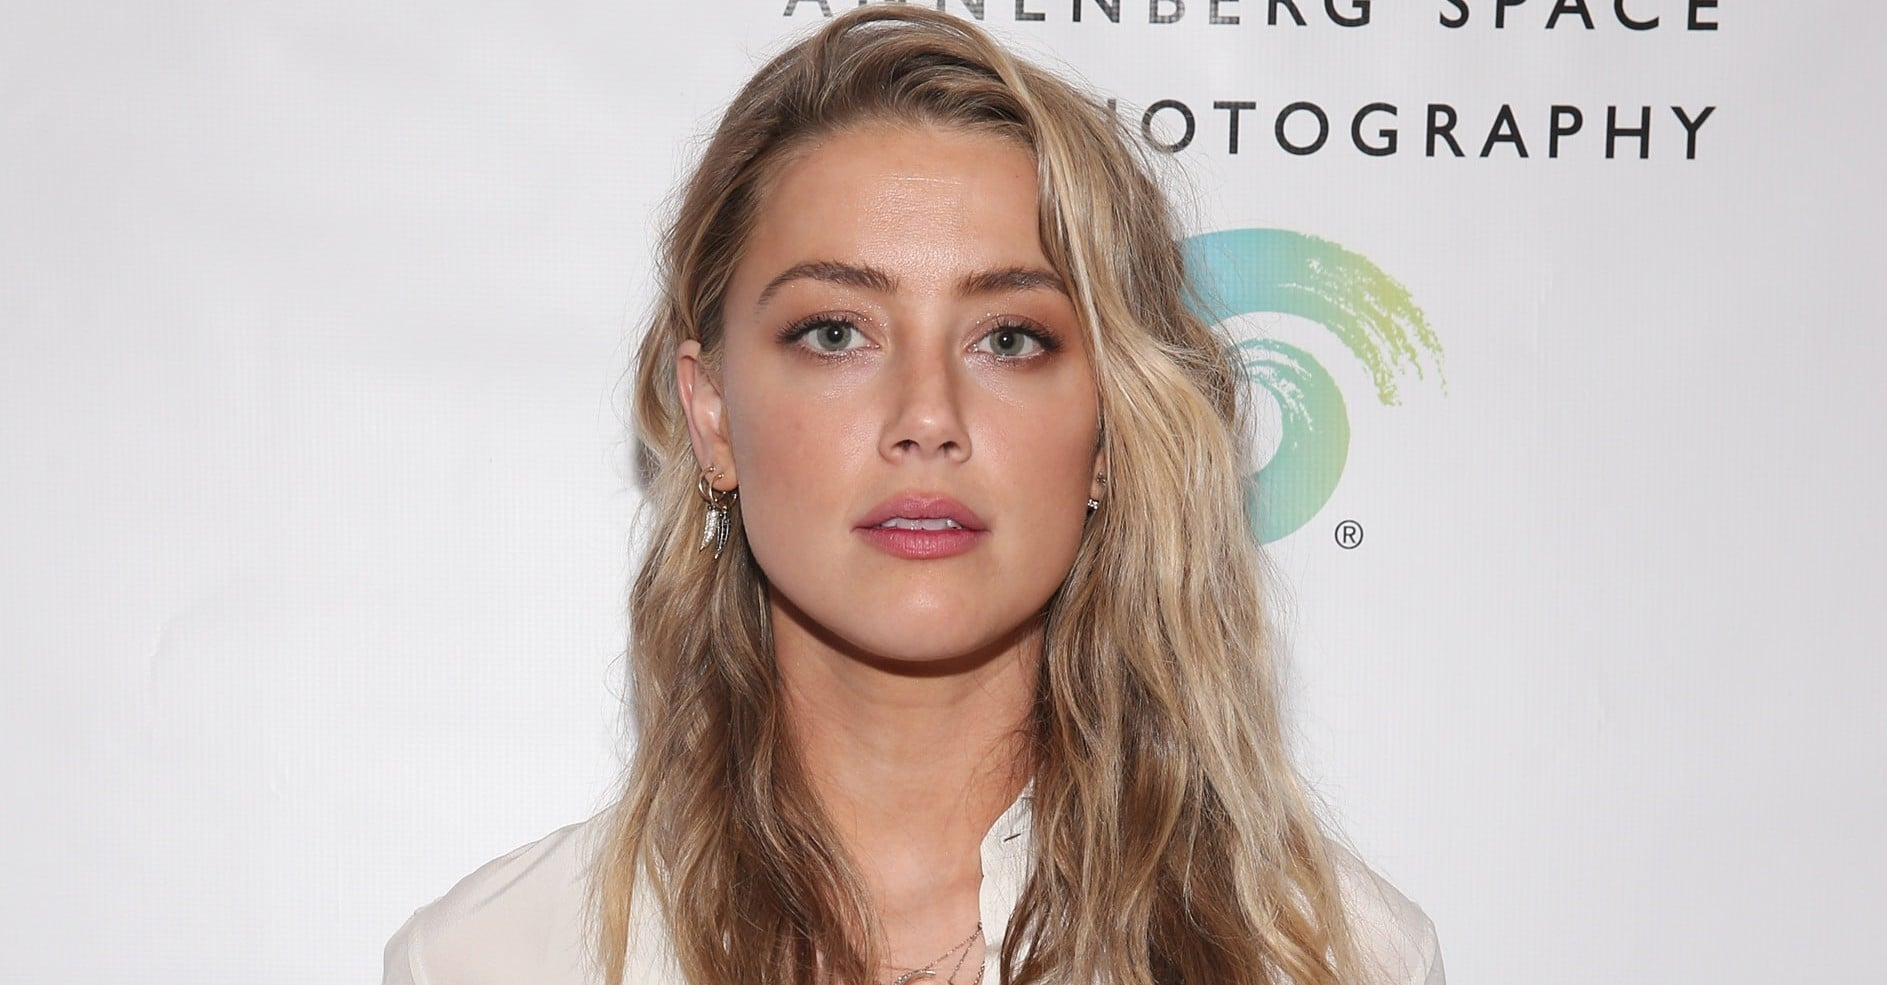 amber heard s essay about domestic abuse in porter magazine  amber heard s essay about domestic abuse in porter magazine